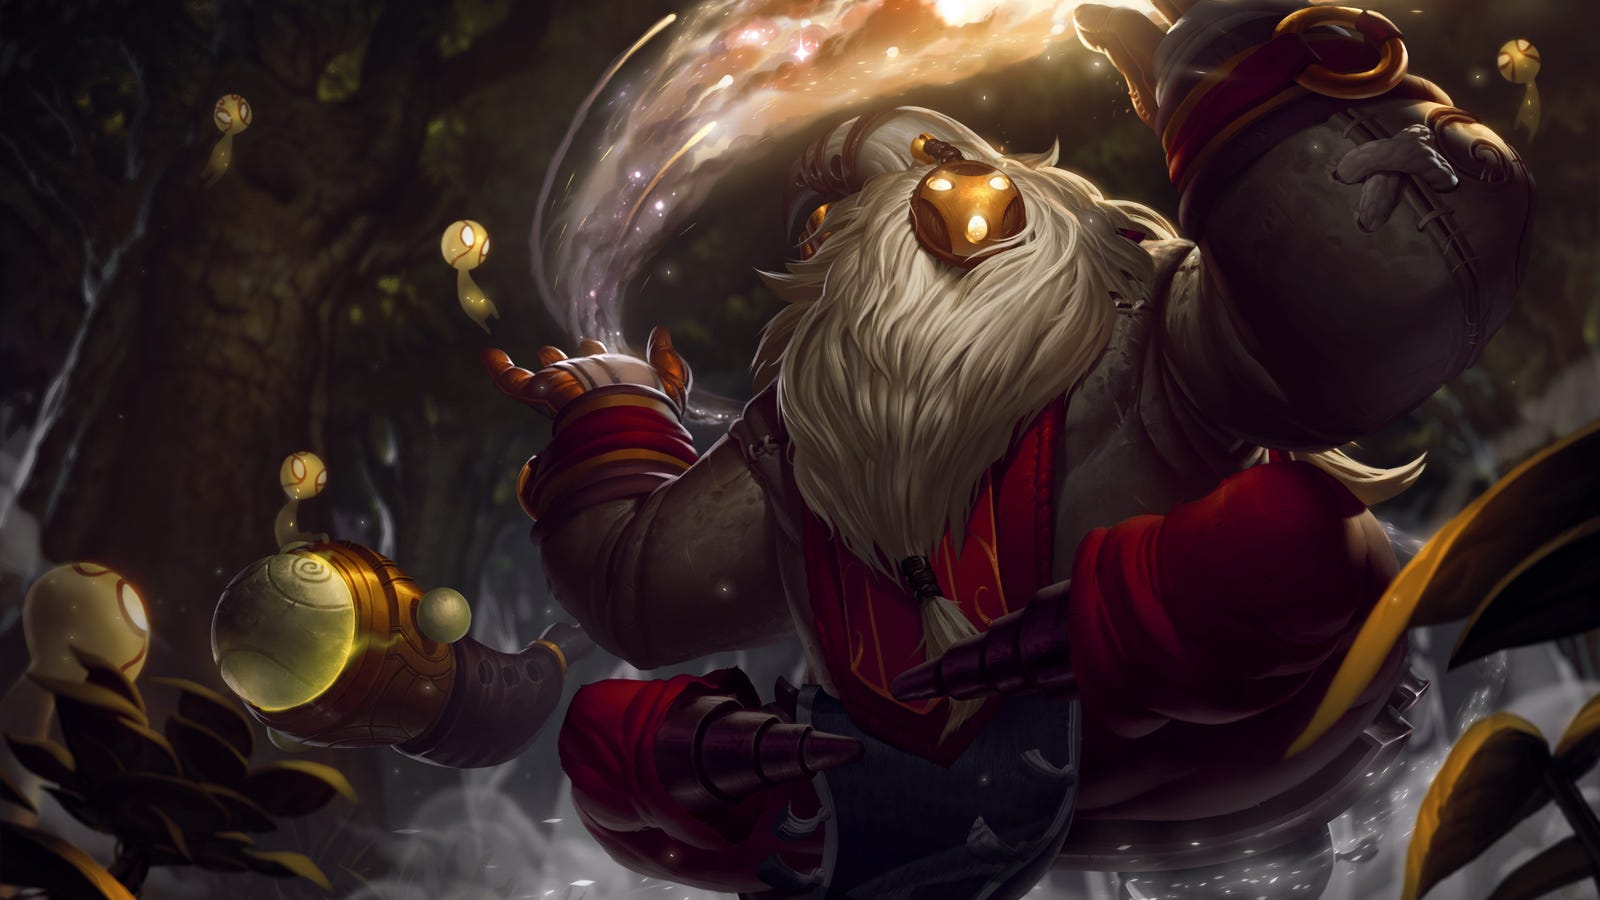 Top Riot Executive Suspended Without Pay Following Investigation Over Workplace Misconduct